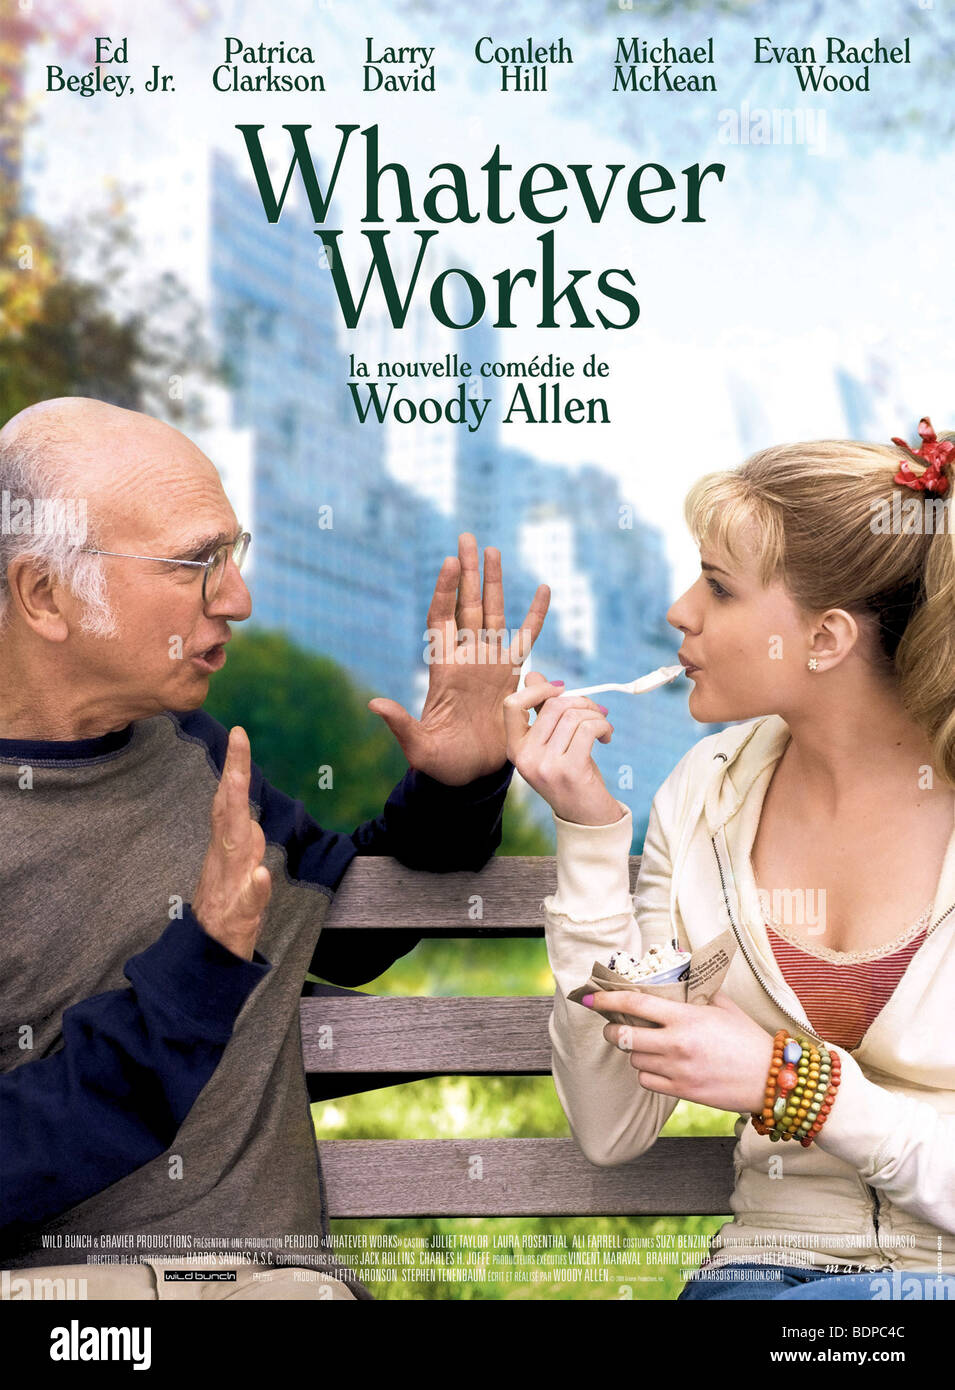 whatever works year 2009 director woody allen larry